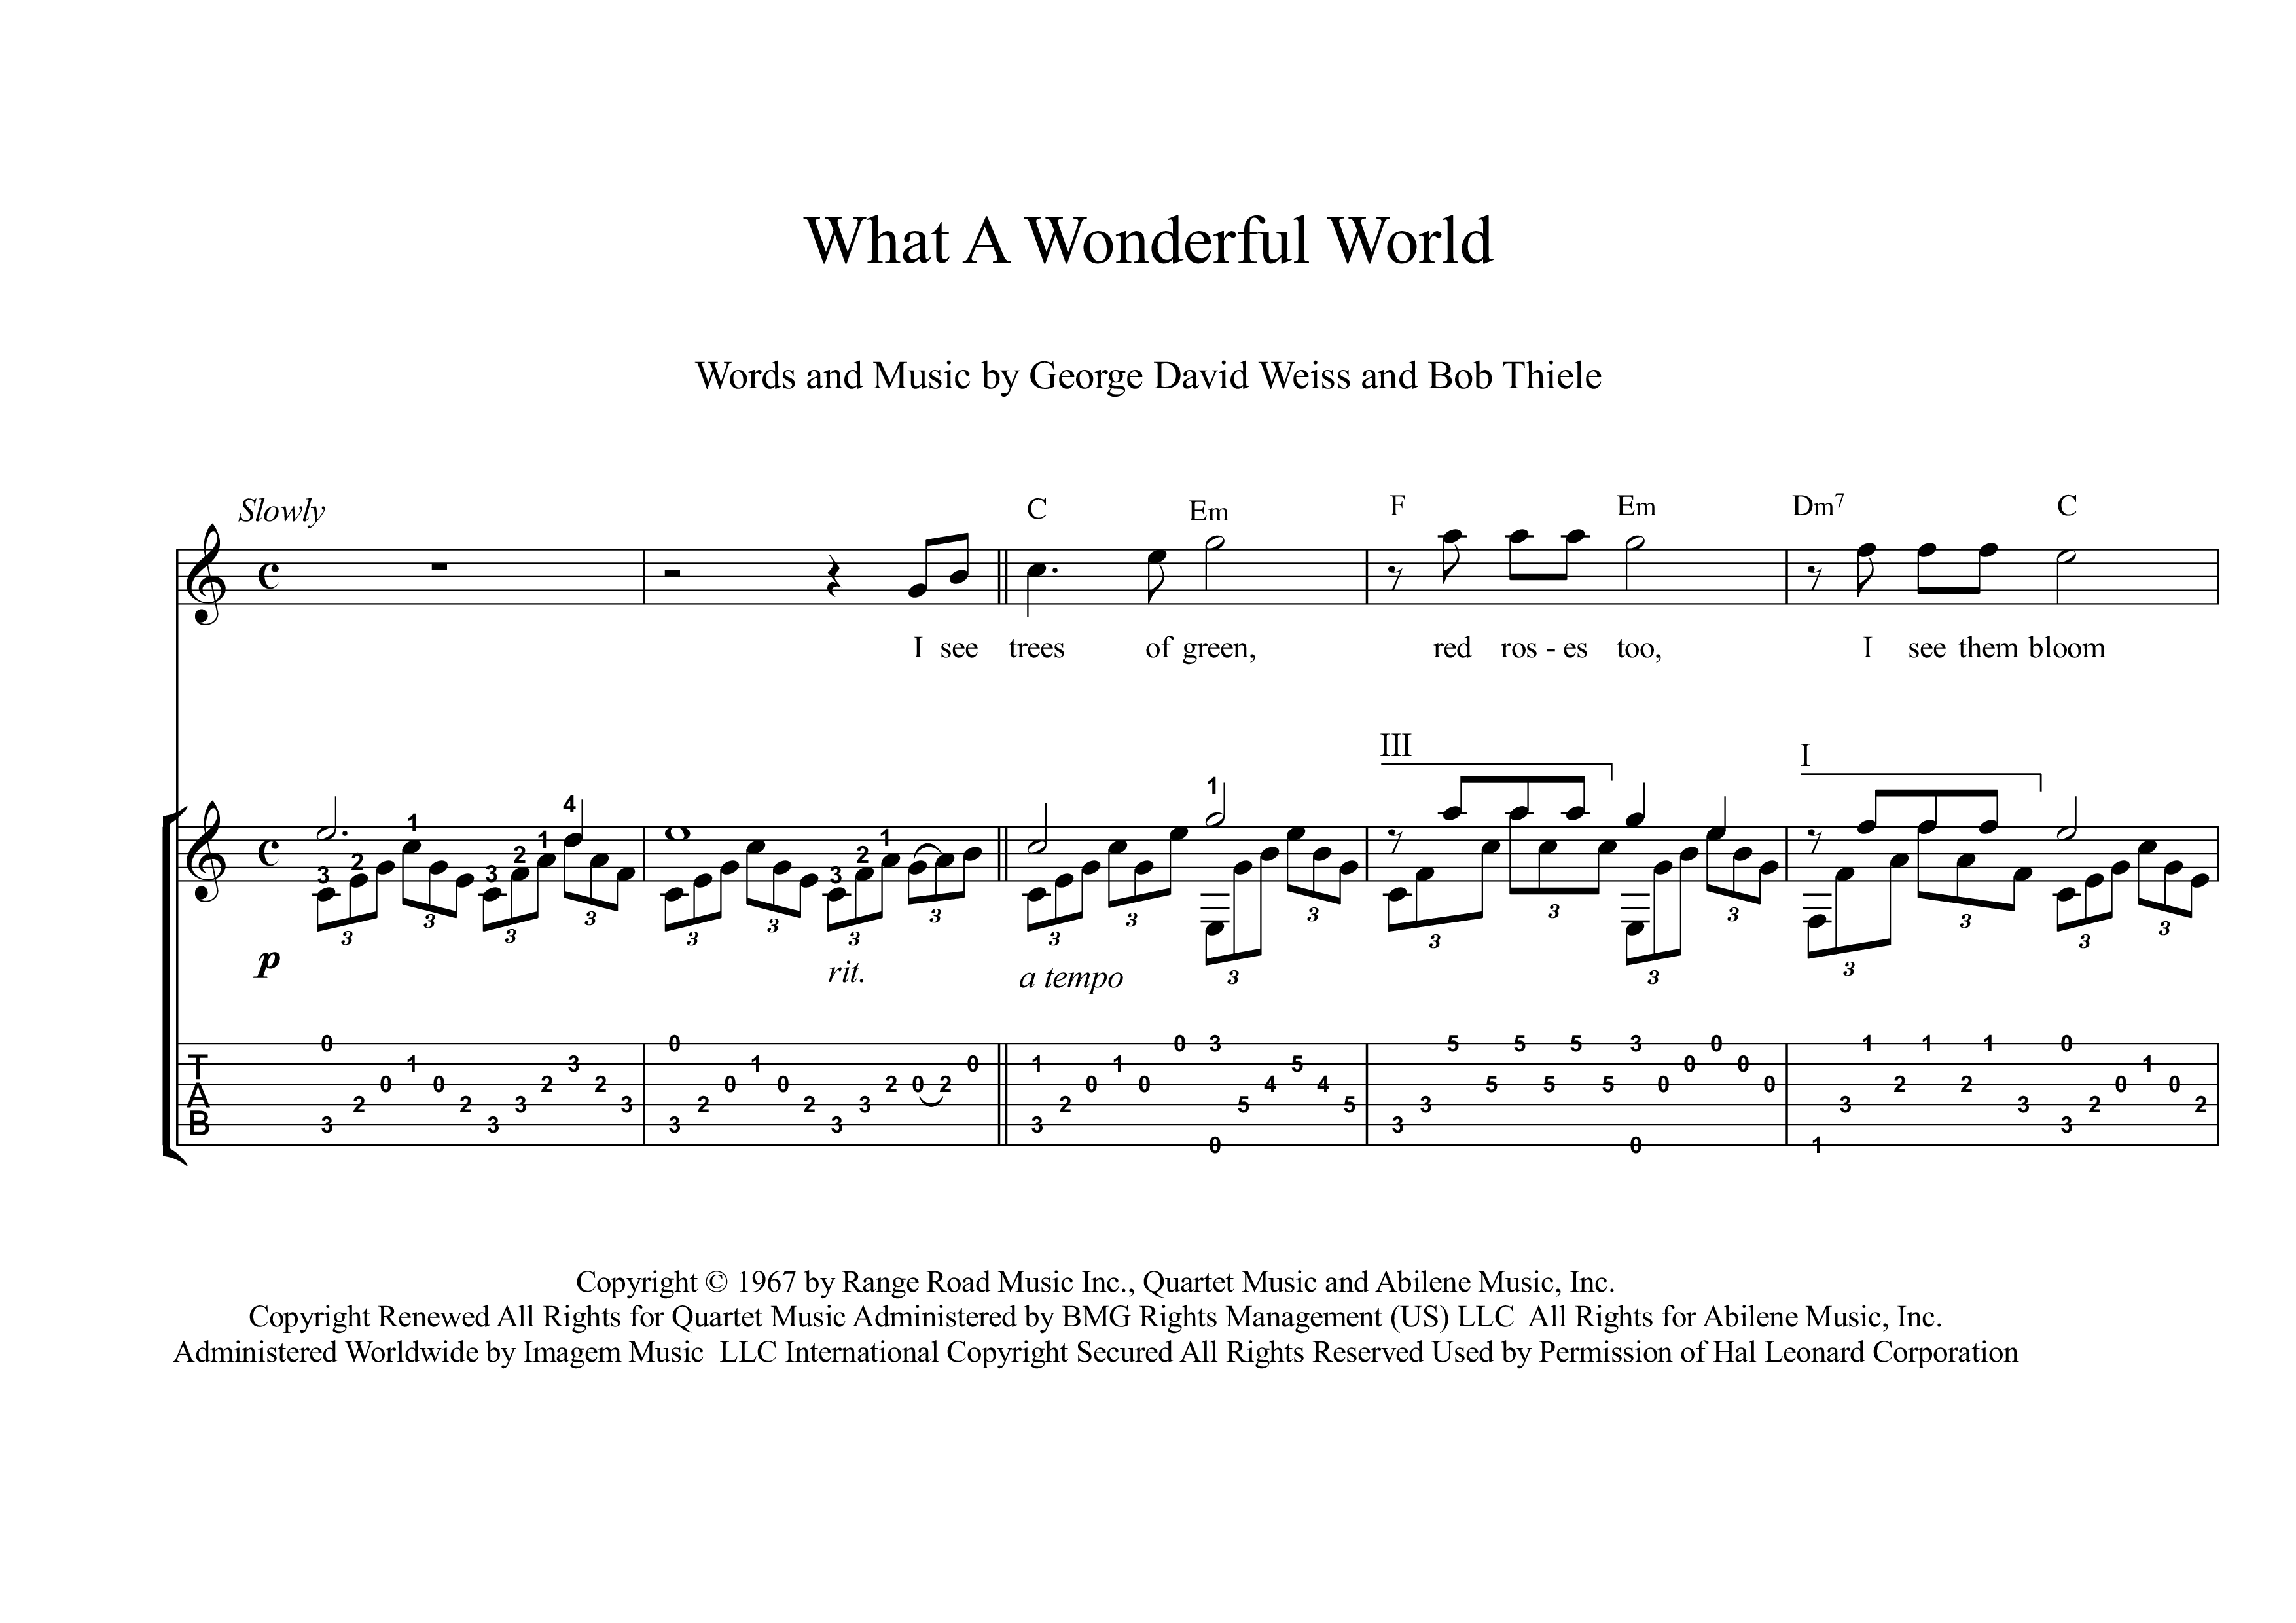 What A Wonderful World guitar score download | Classical guitar sheet  music, Classical guitar, Guitar sheet music